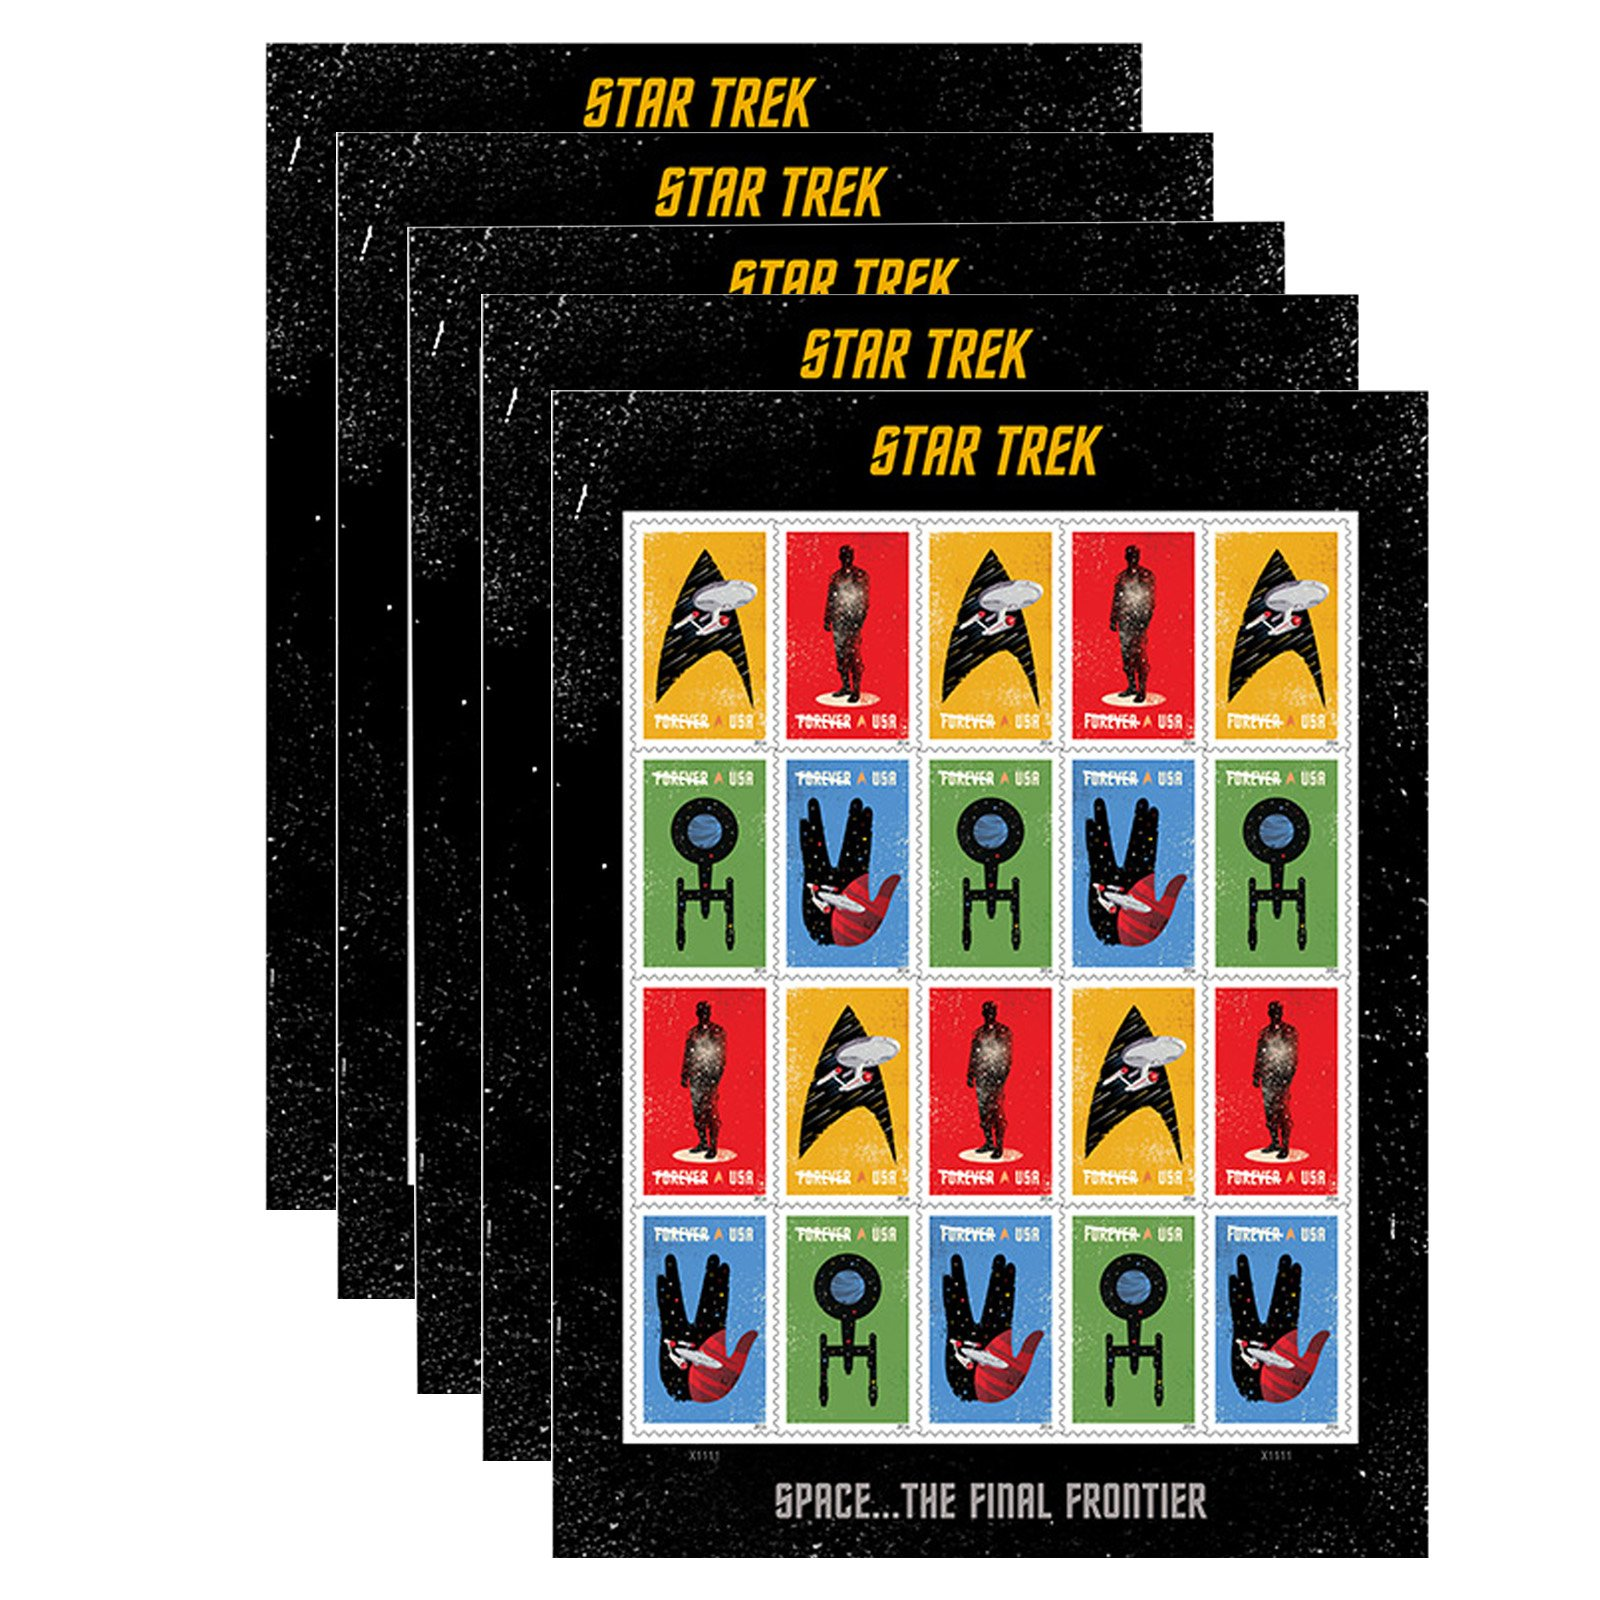 20 Star Trek USPS Forever First Class Postage Stamps Enterprise classic TV (5 sheets of 20 stamps)